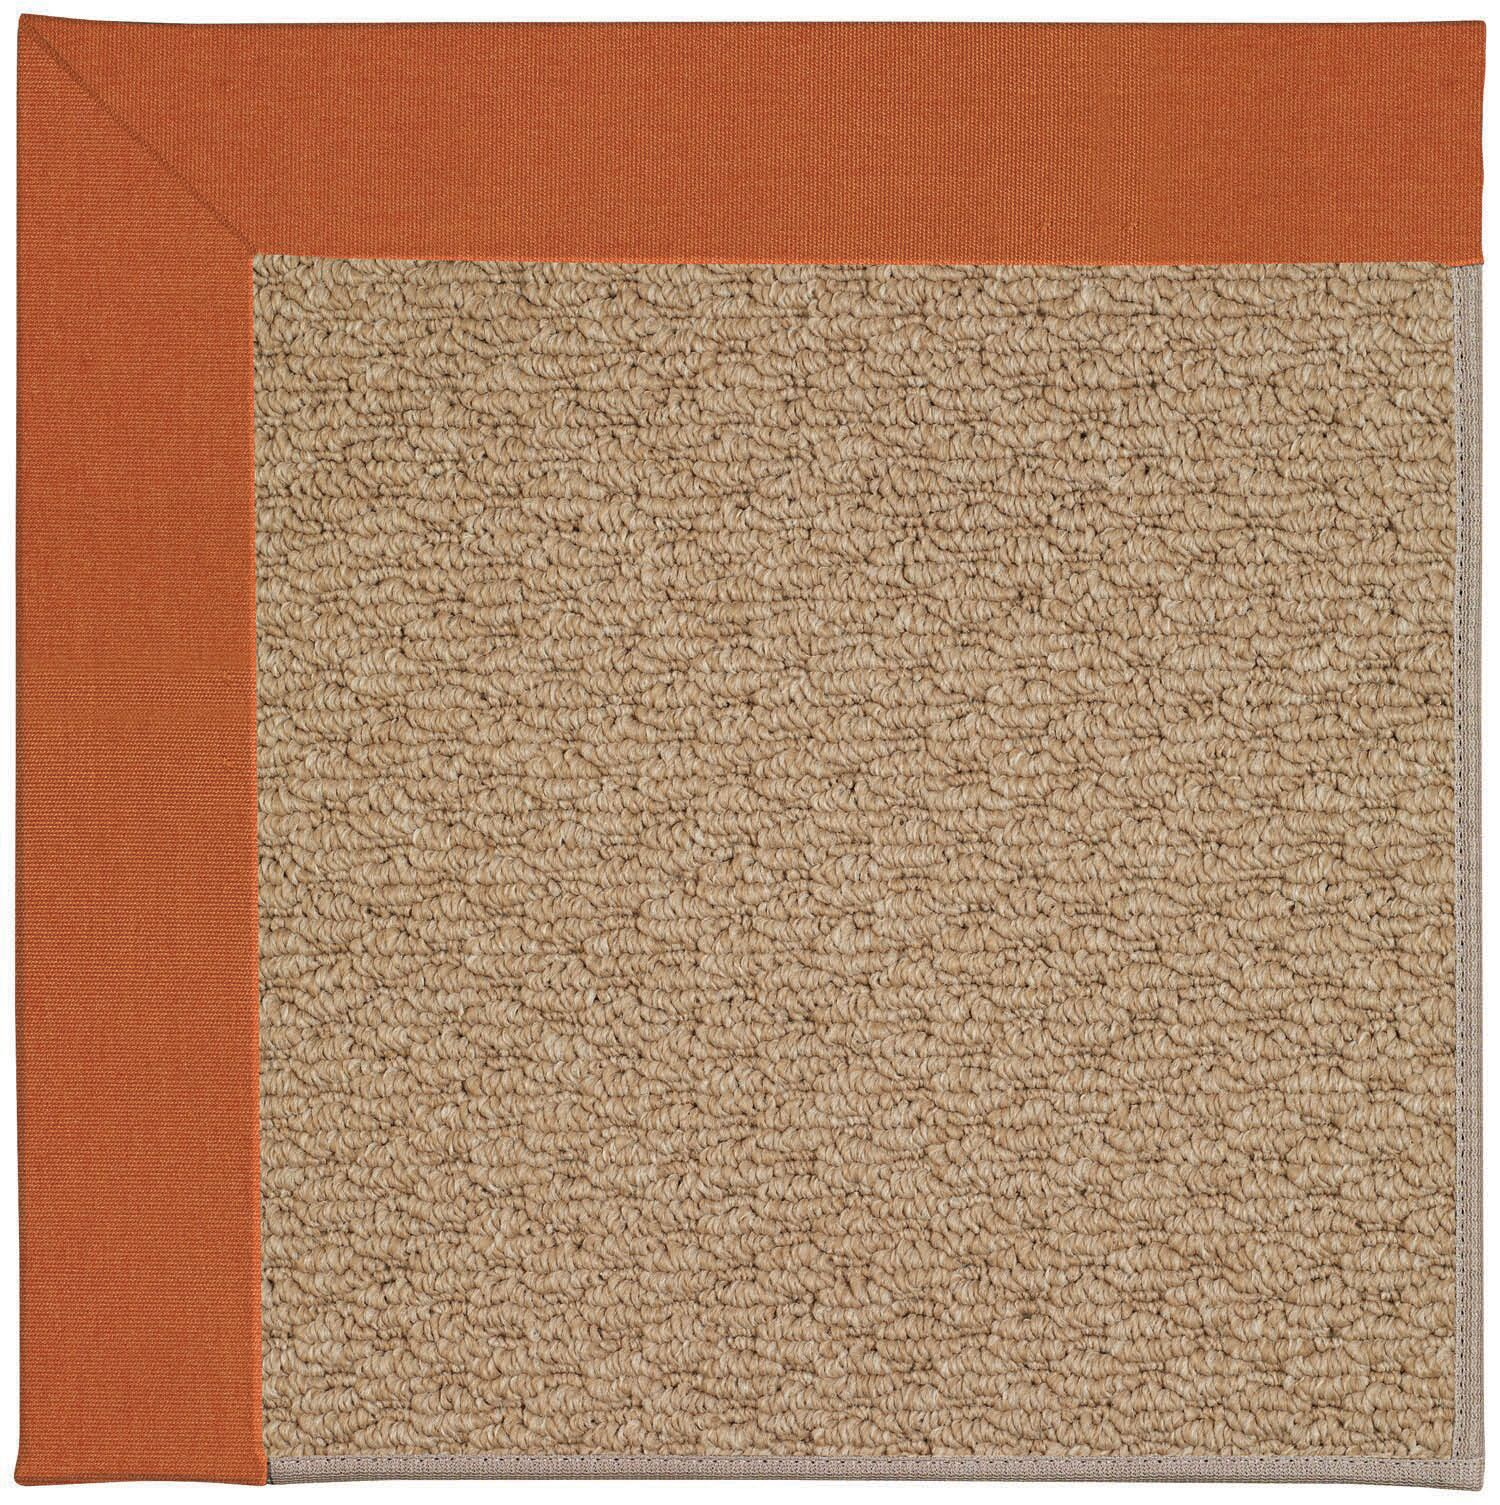 Lisle Machine Tufted Russett/Brown Indoor/Outdoor Area Rug Rug Size: Square 4'